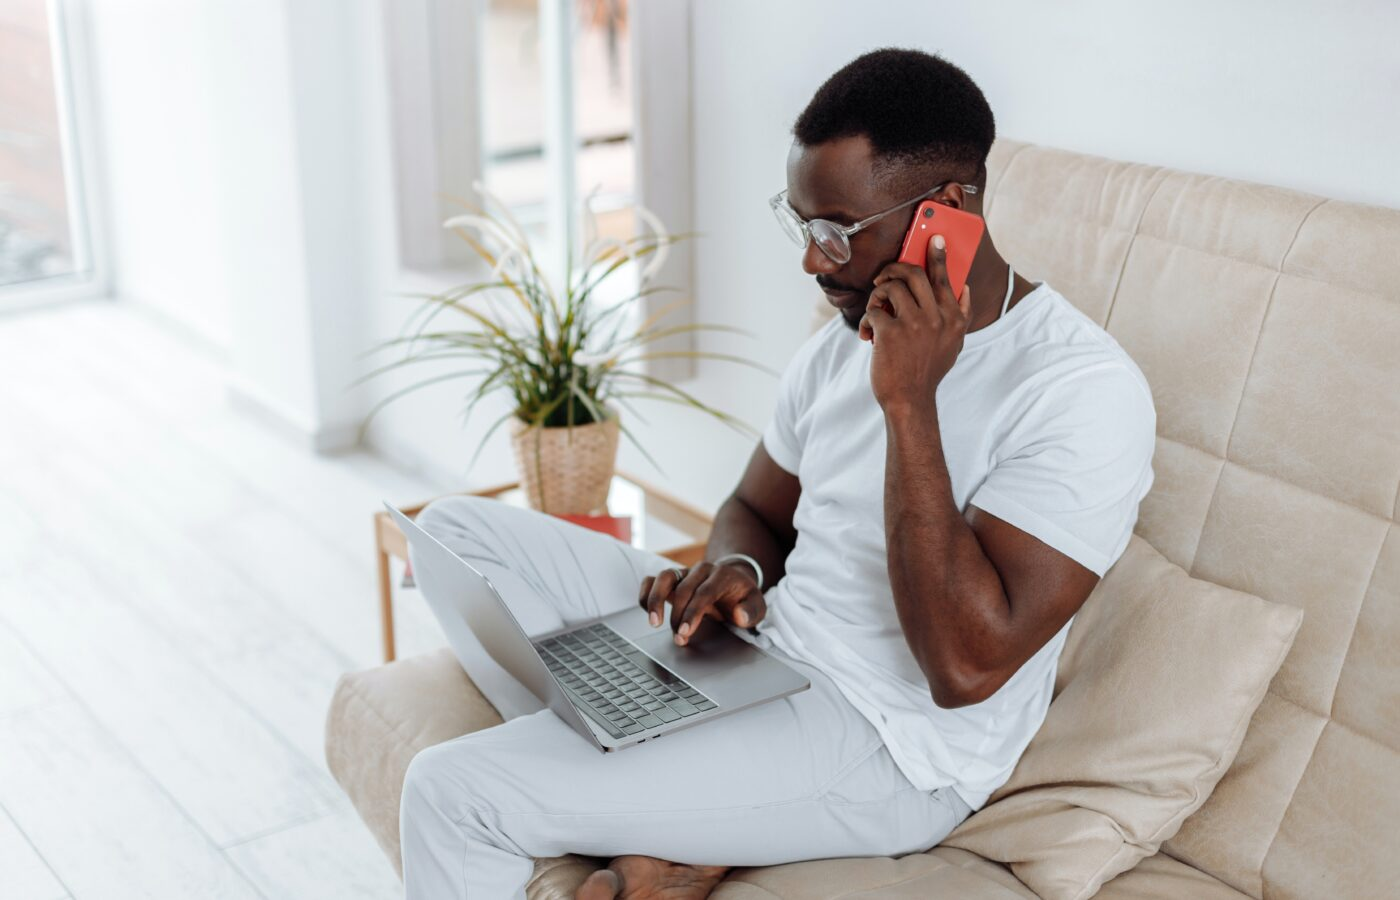 Deferred VAT payment for e-commerce - man dressed in white sitting on a beige armchair in a minimalist room on the phone with a laptop on his lap